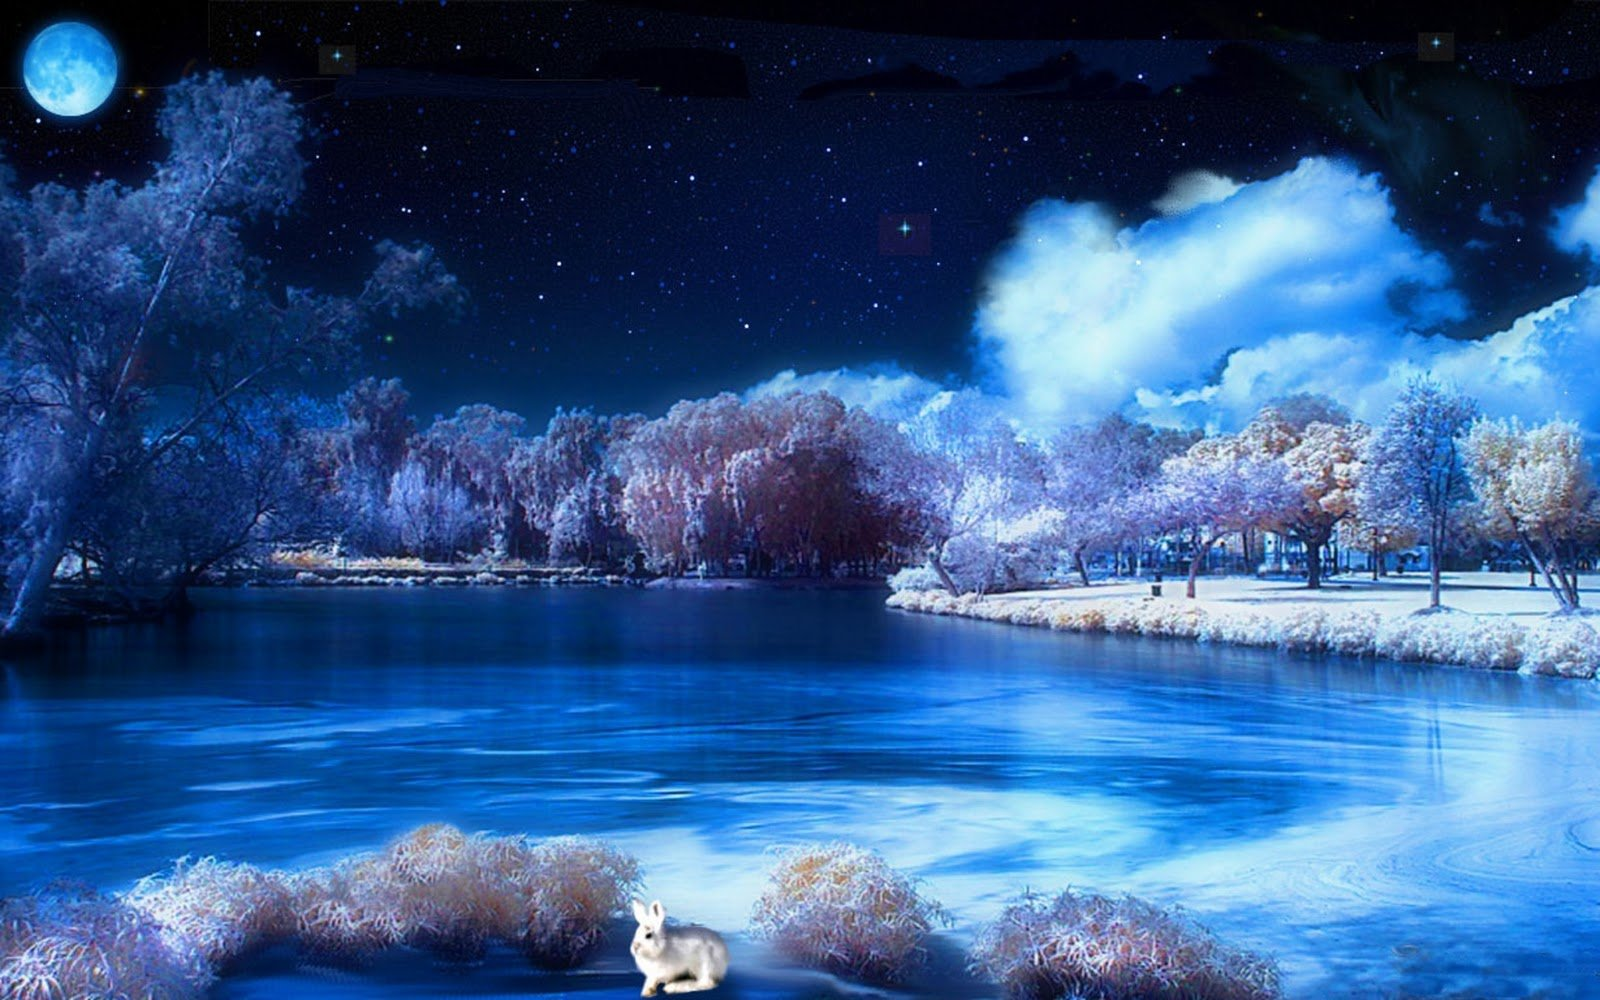 Night scene wallpaper 60 wallpapers hd wallpapers for Wall scenes